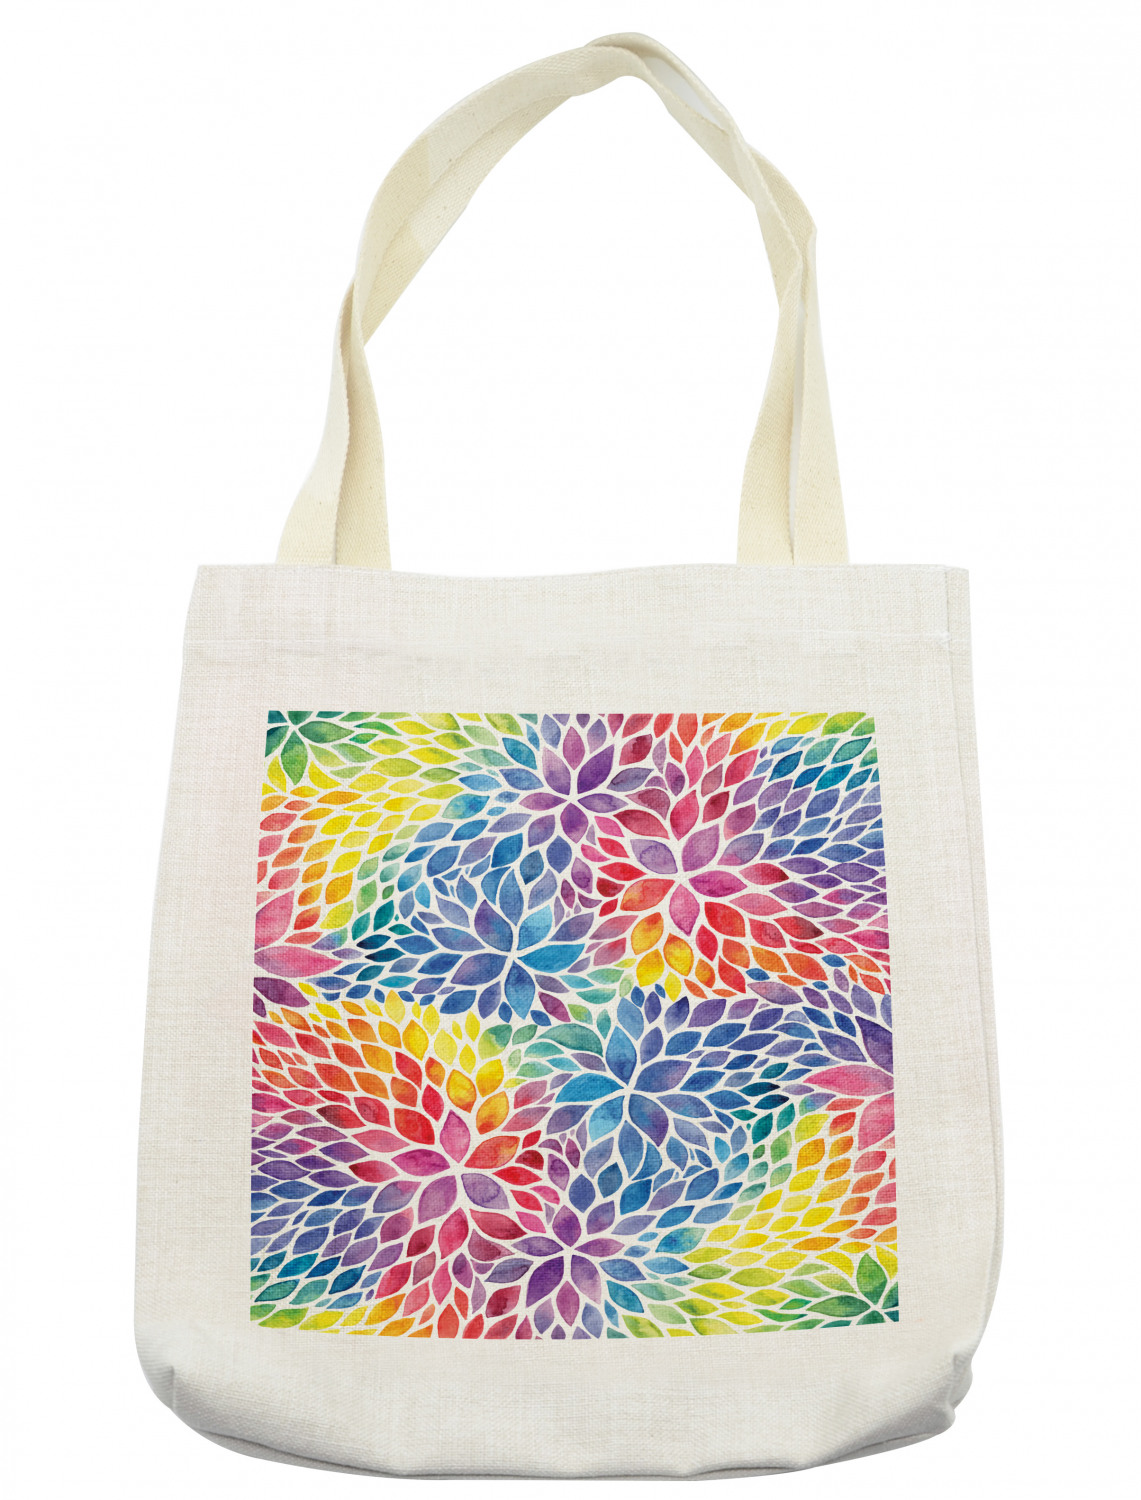 Animal Tote Bag with Multicolor Cotton Shoulder Straps I For Women and Men Beach Shopping Laptop Market Bag  I Foldable Reusable and Stylish